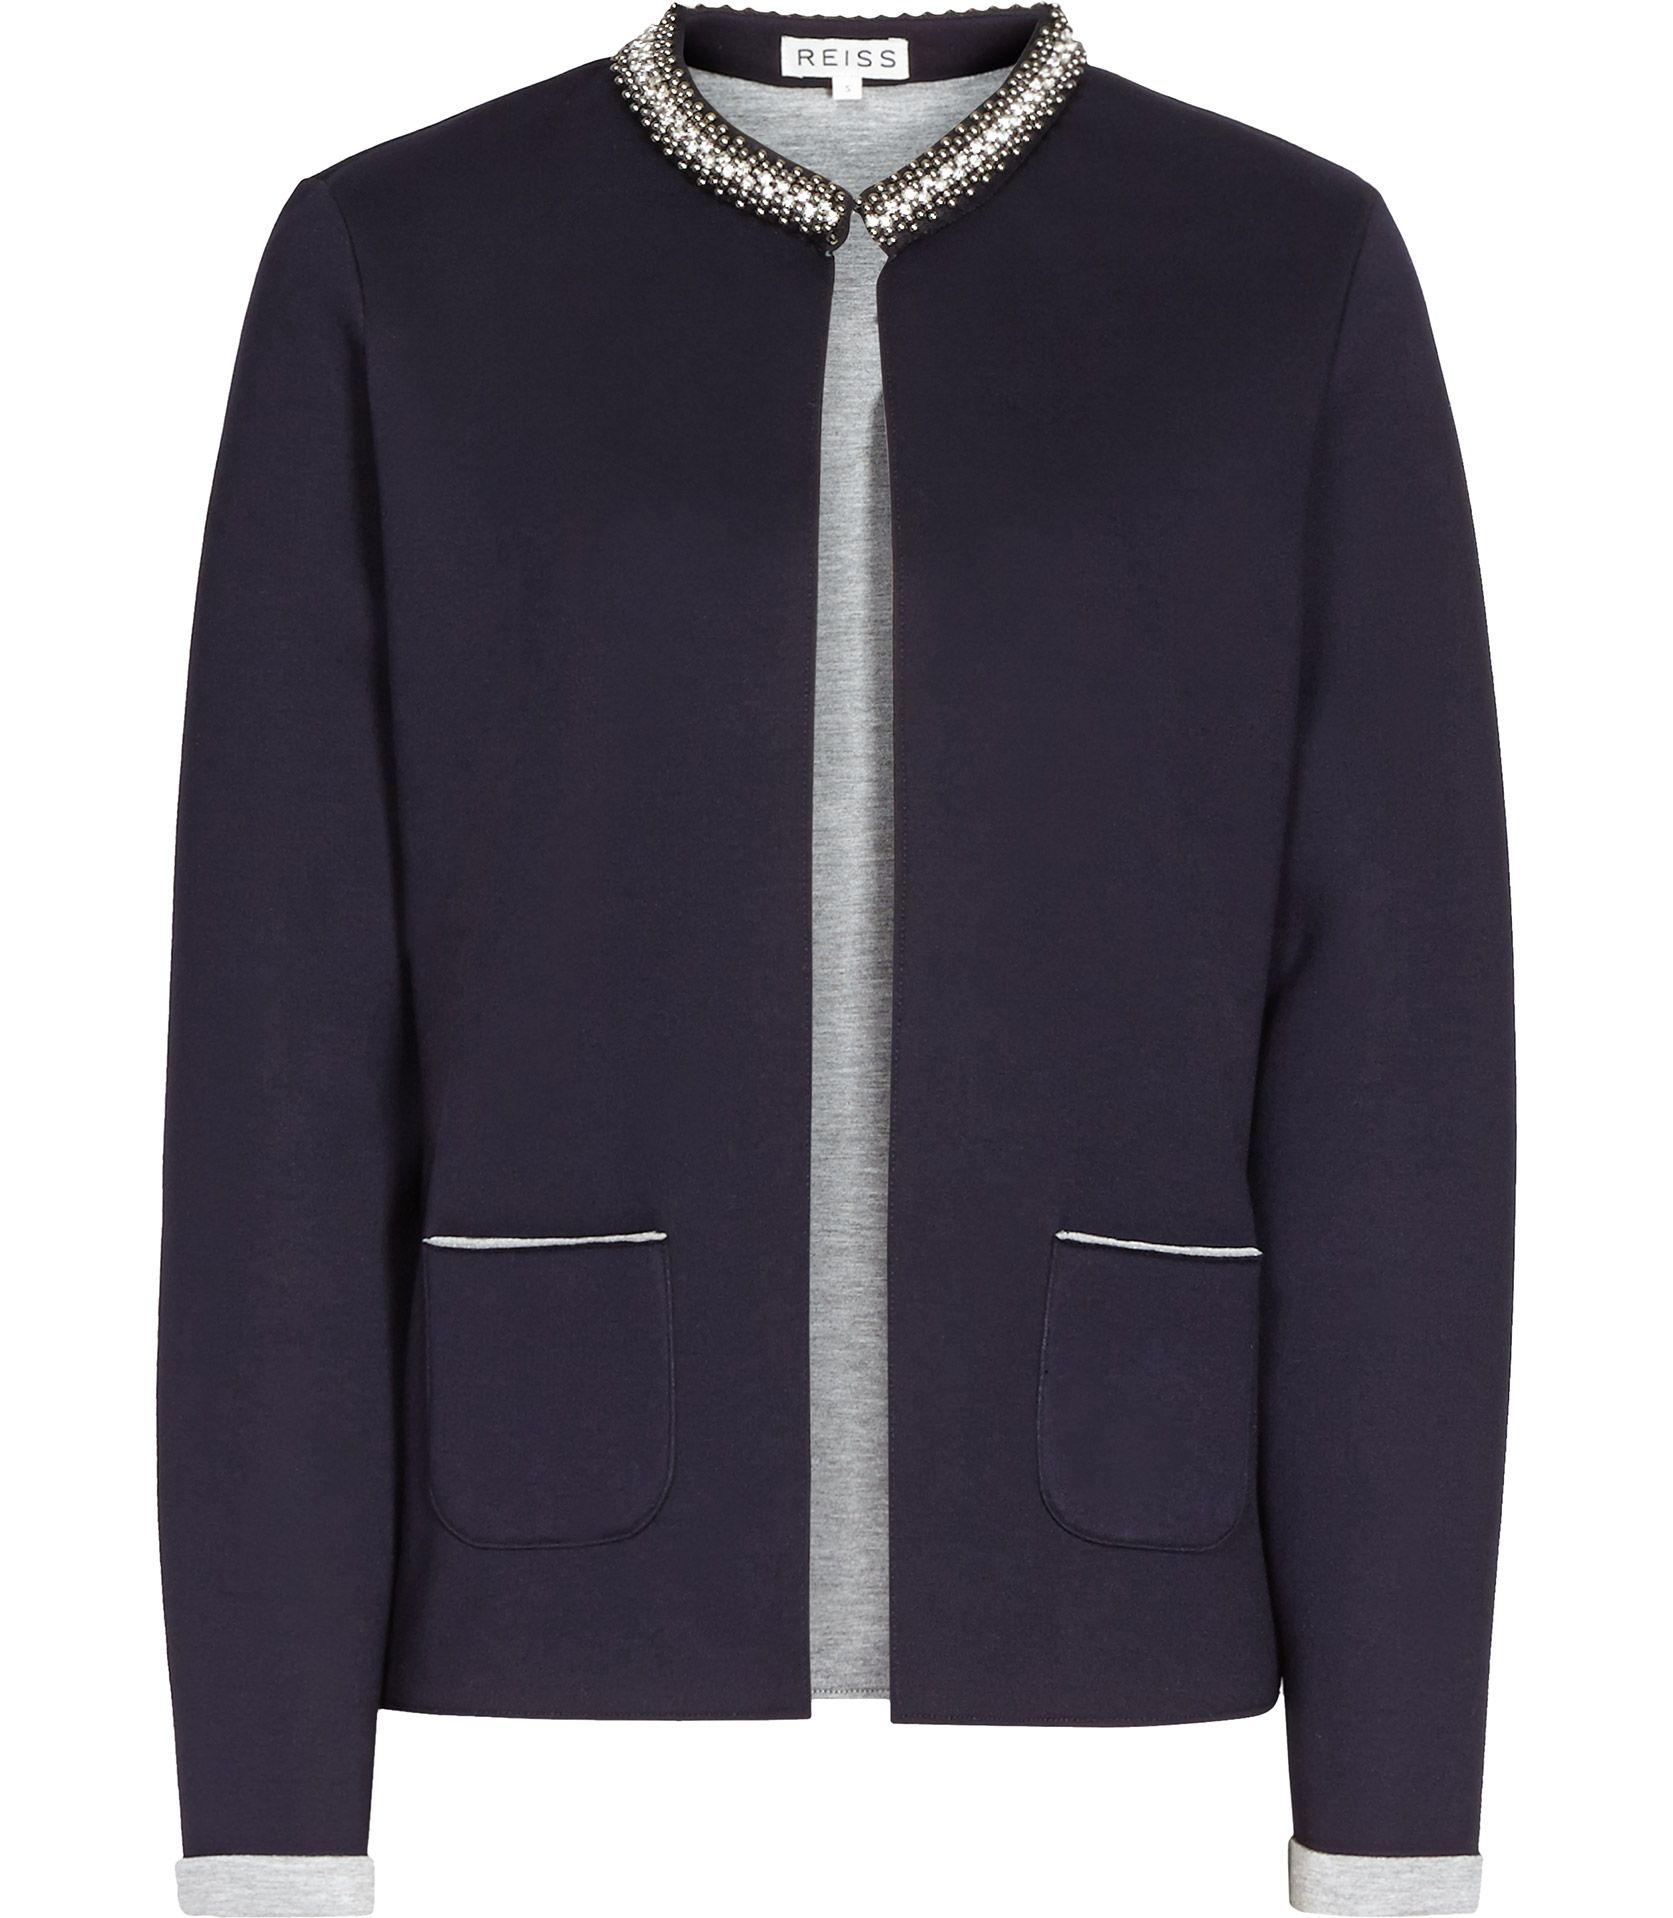 fc756d7071 Womens Navy Embellished Tailored Jacket - Reiss Flame | Coats and ...